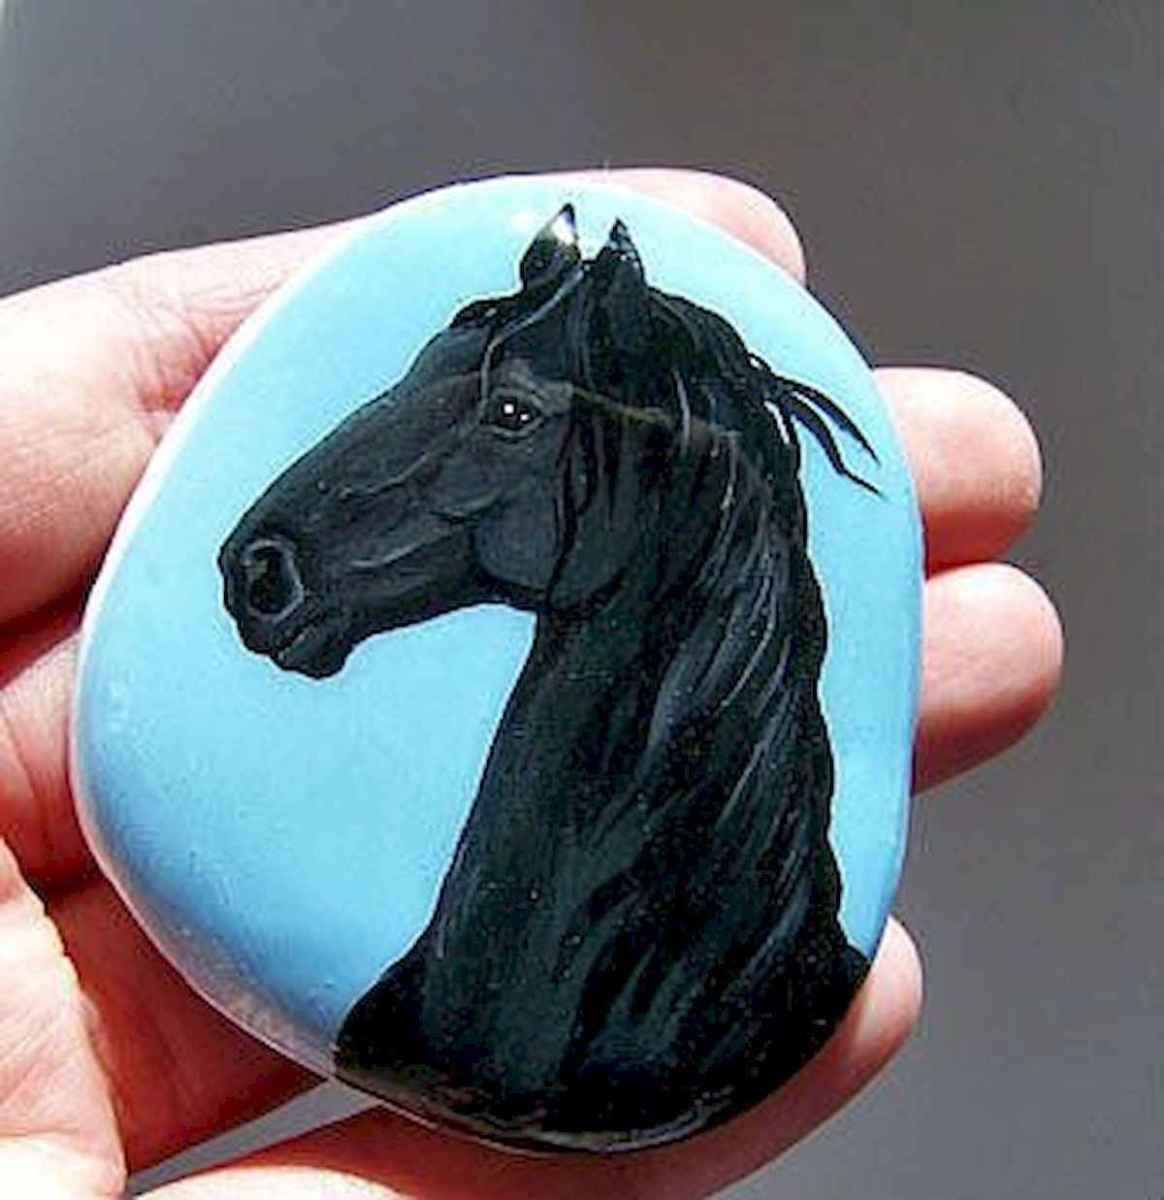 25 Suprising DIY Projects Painted Rocks Animals Horse for Summer Ideas (23)